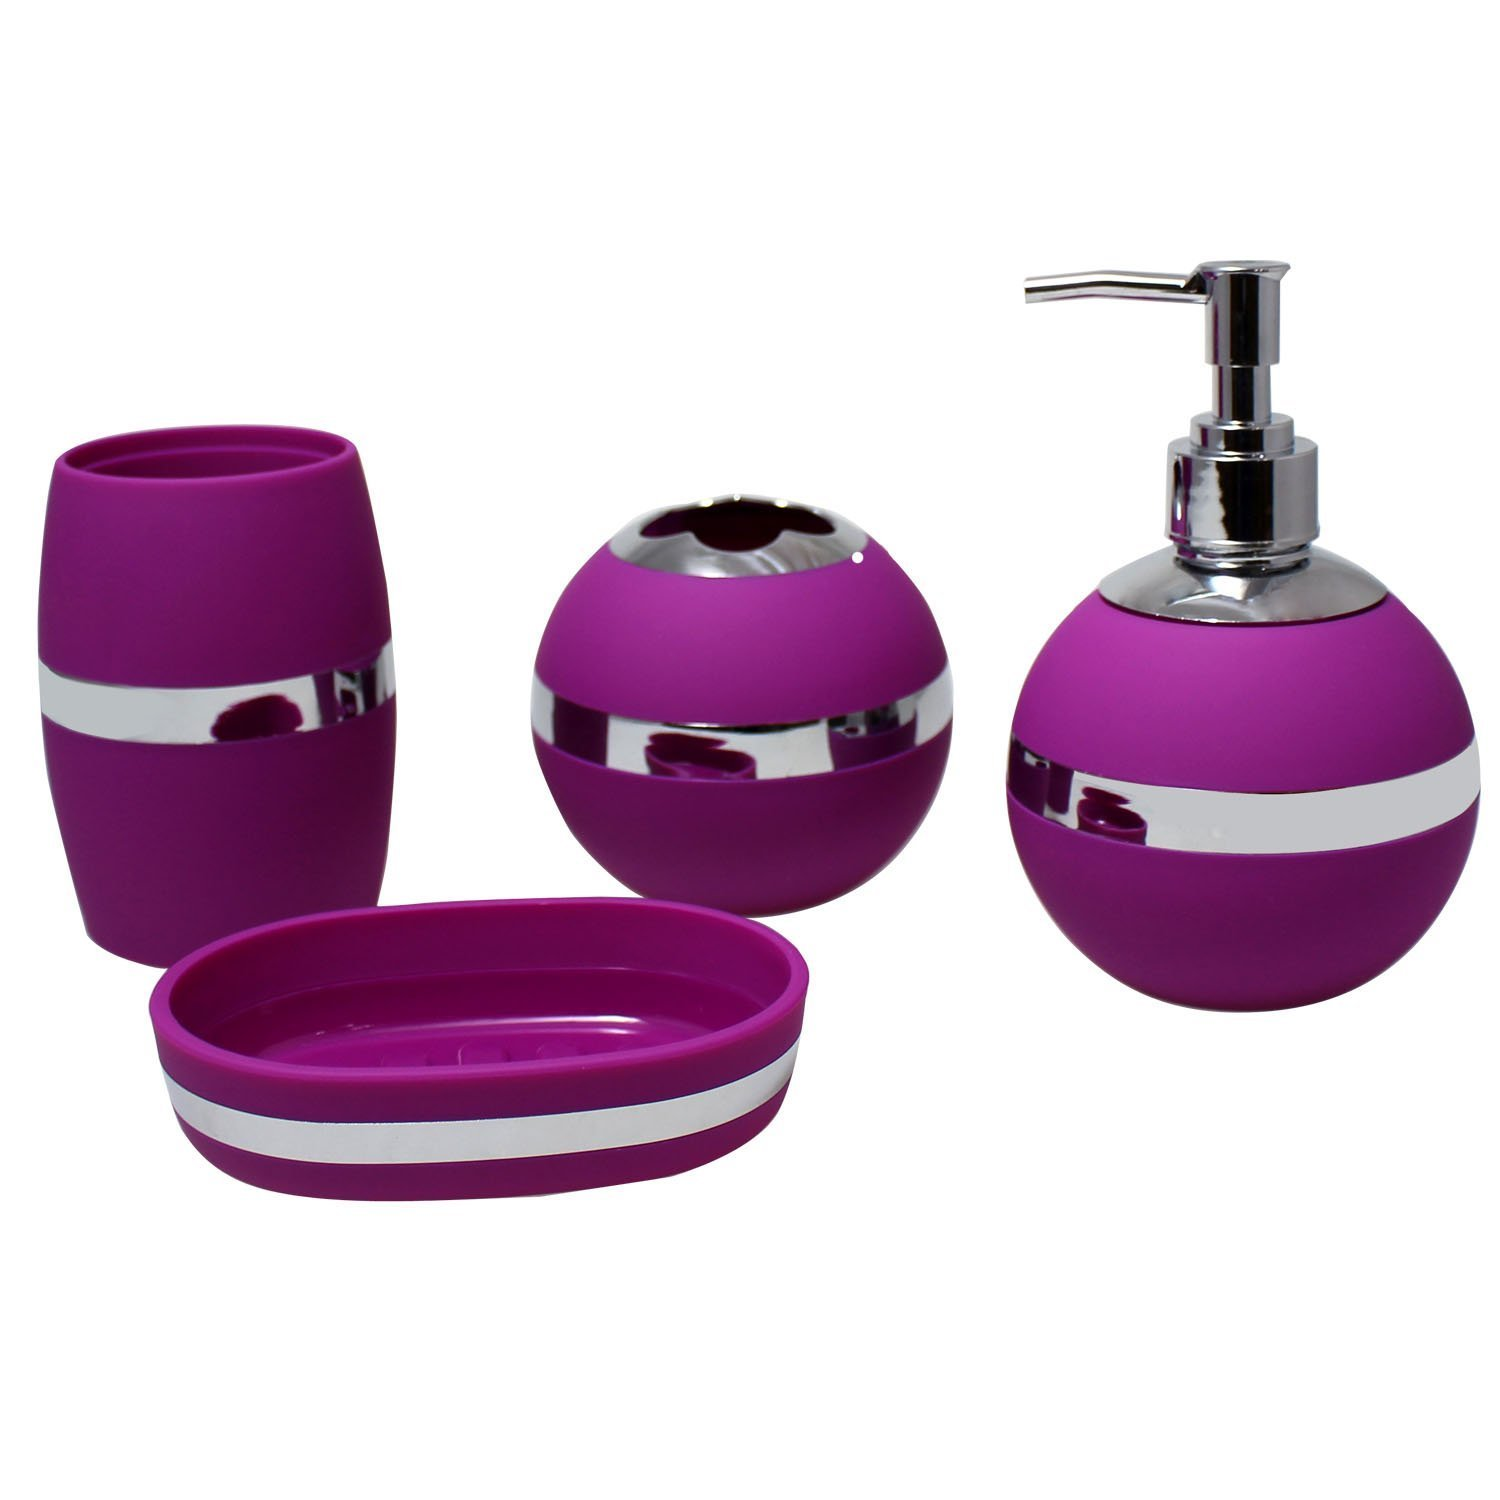 JustNile Stylish Trendy 4-Piece Bathroom Accessory Set - Purple